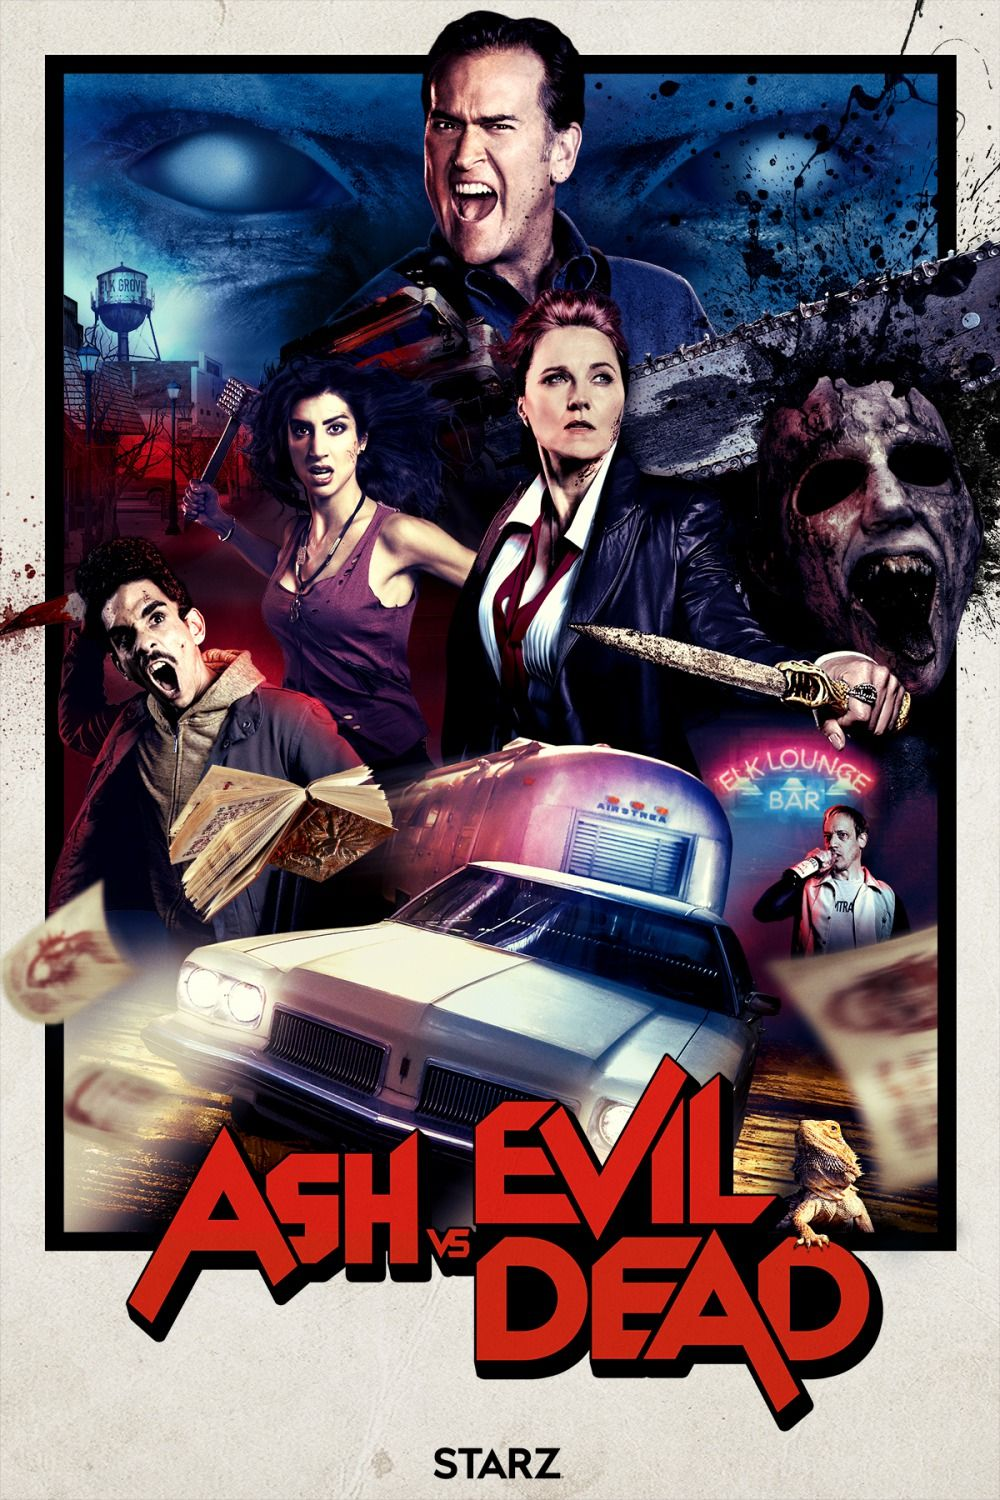 Ash Vs Evil Dead Season 2 Red Band Trailer And Poster Evil Dead Movies Ash Evil Dead Newest Horror Movies